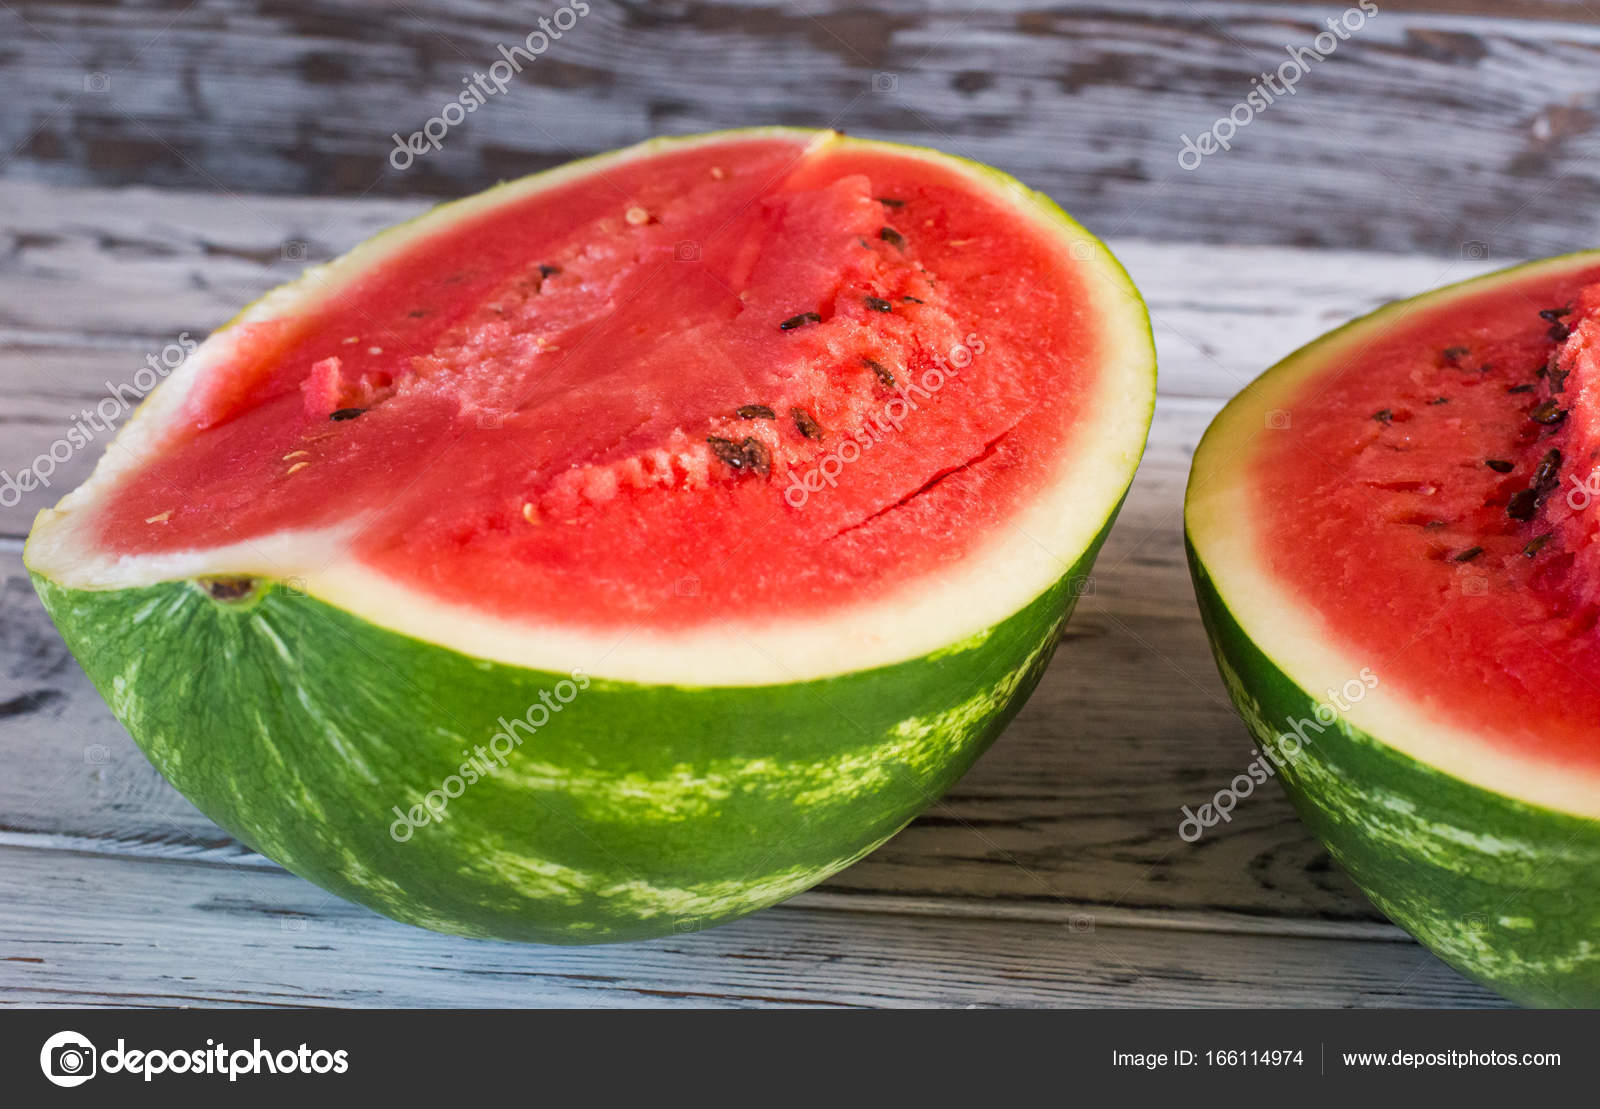 Why is watermelon useful